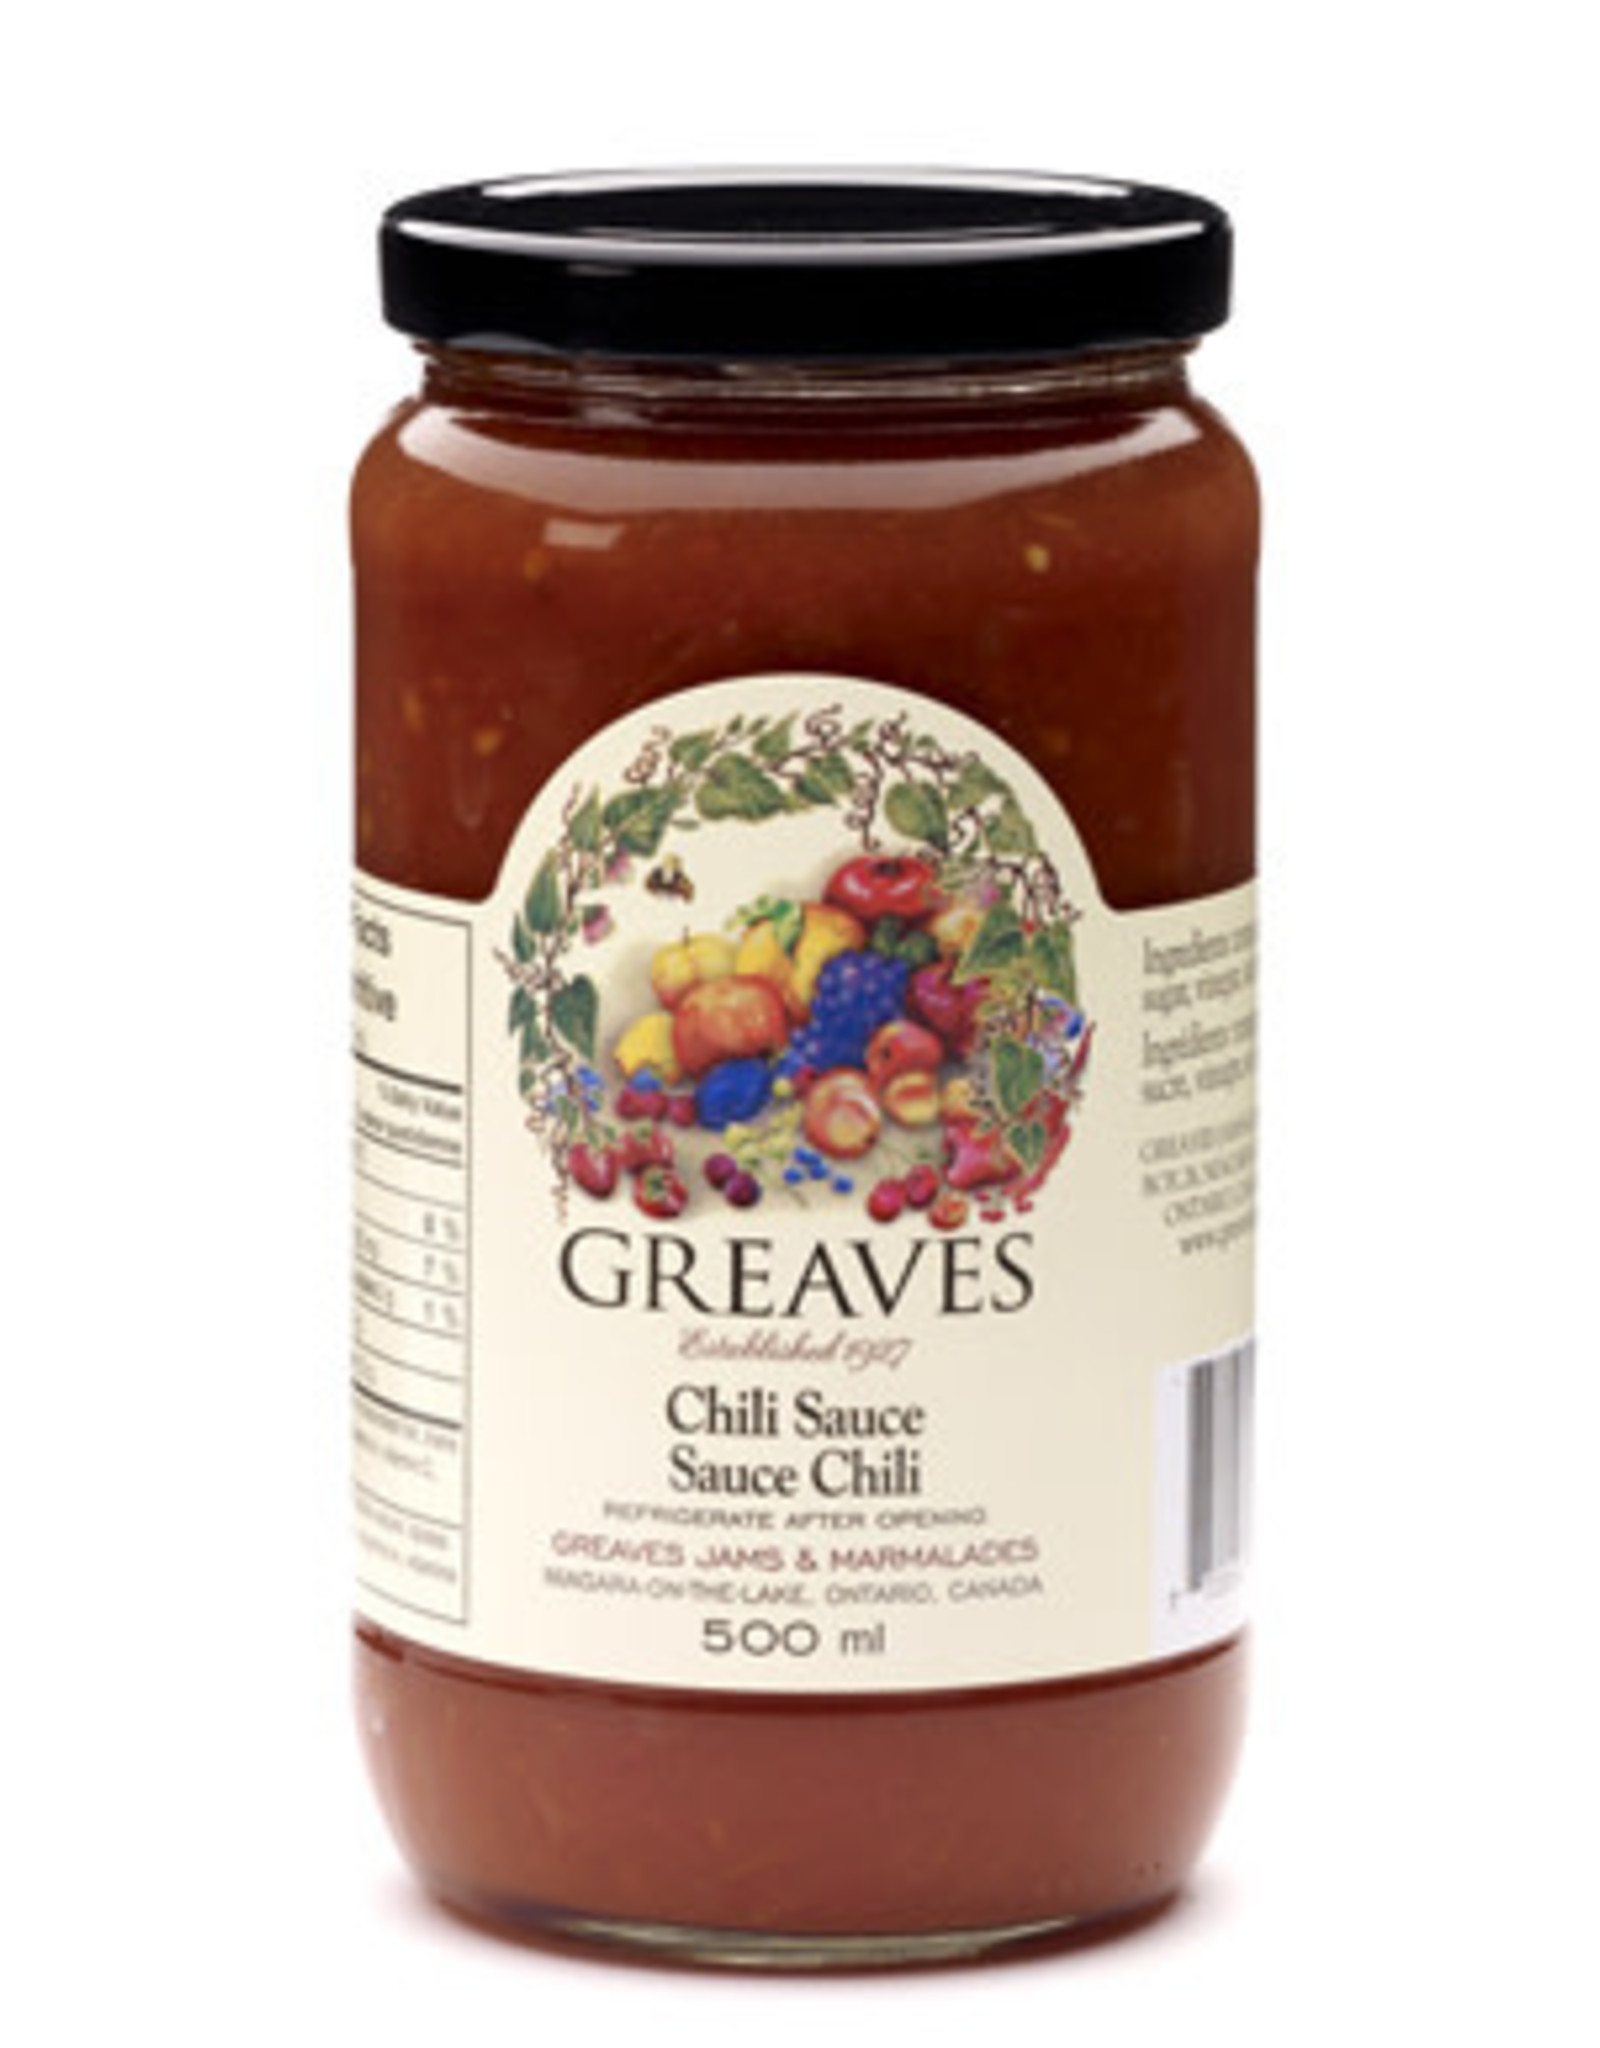 Greaves Jams & Marmalades Ltd. Greaves, Chili Sauce, 500ml